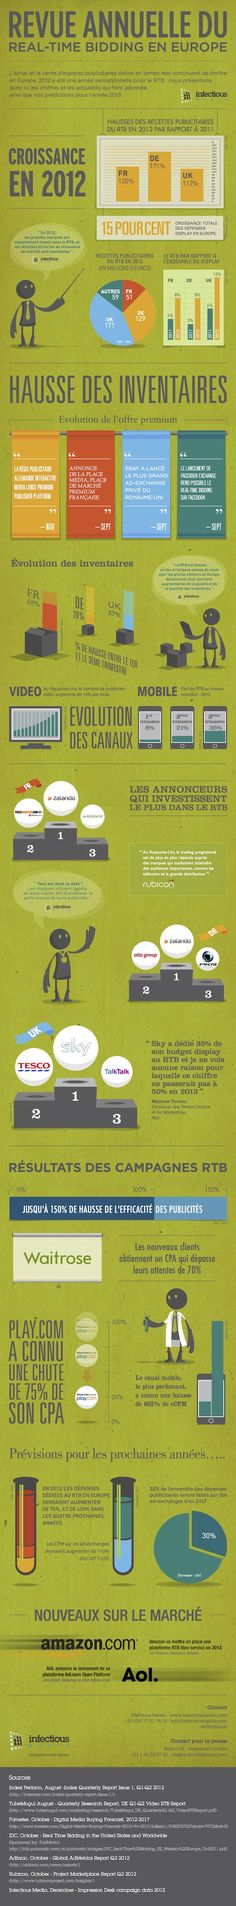 Real-Time Bidding in Europe 2012 | Infectious Media [Infographic]